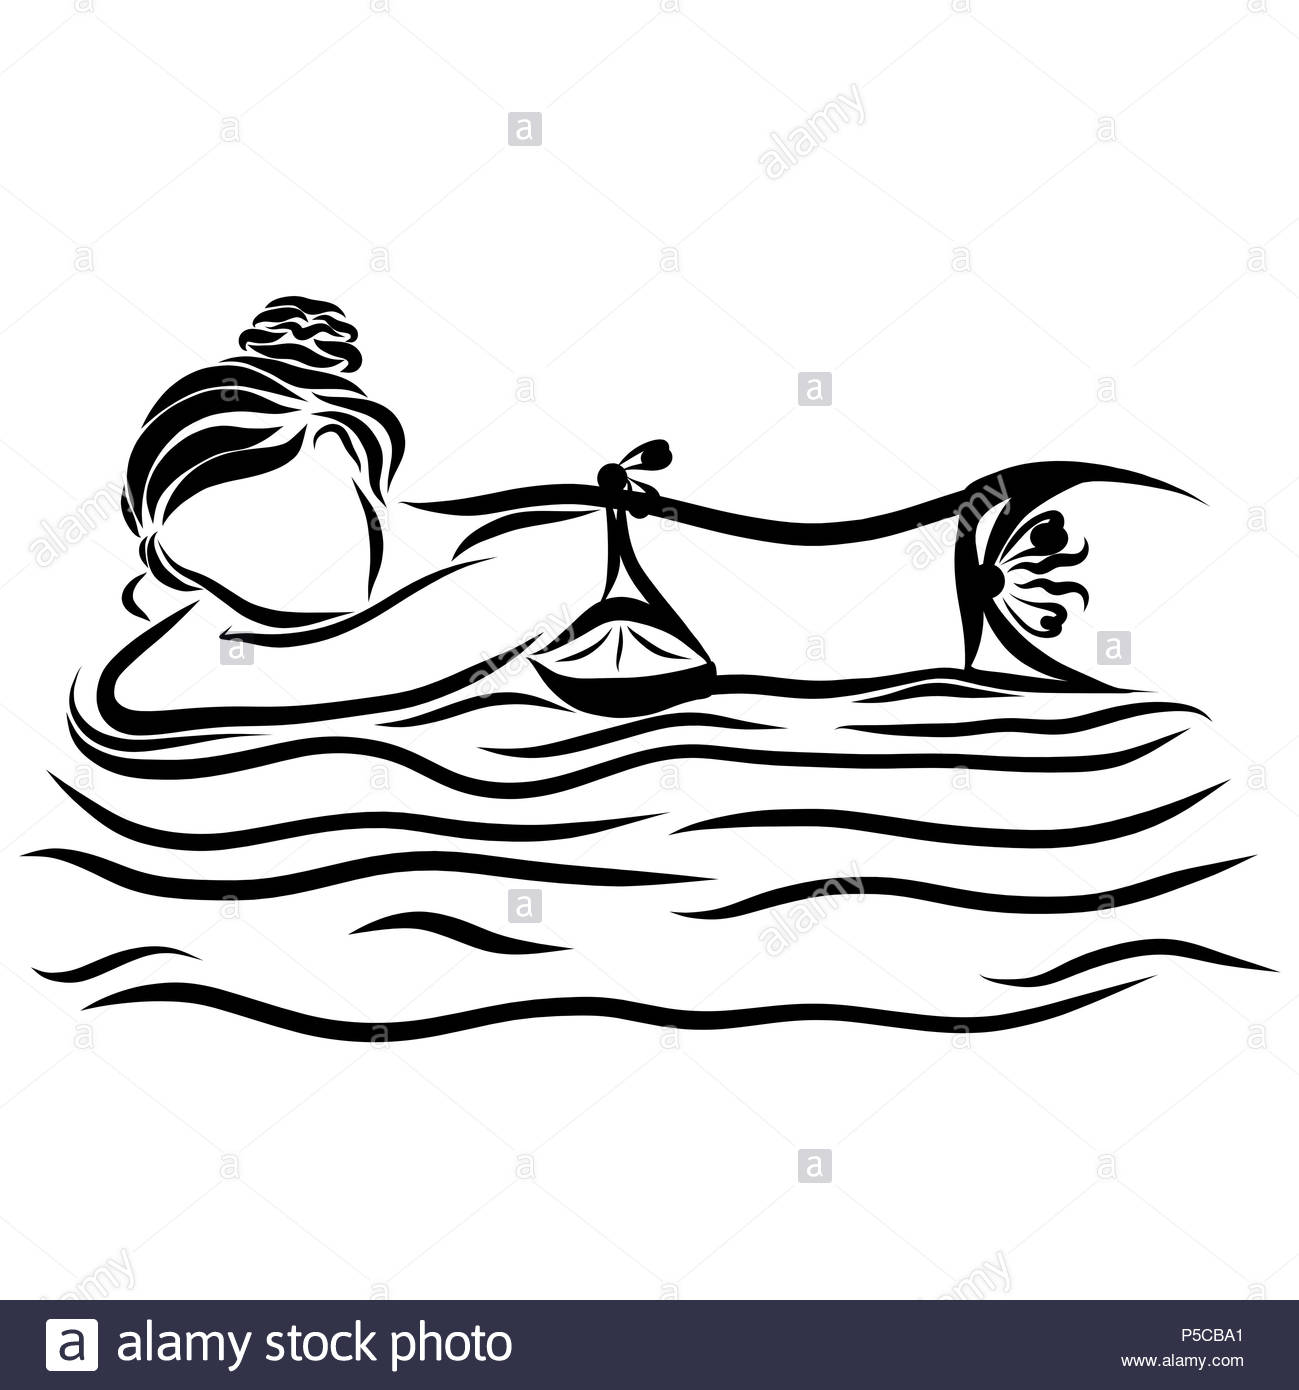 A girl in a bikini floating on a mattress on the waves - Stock Image